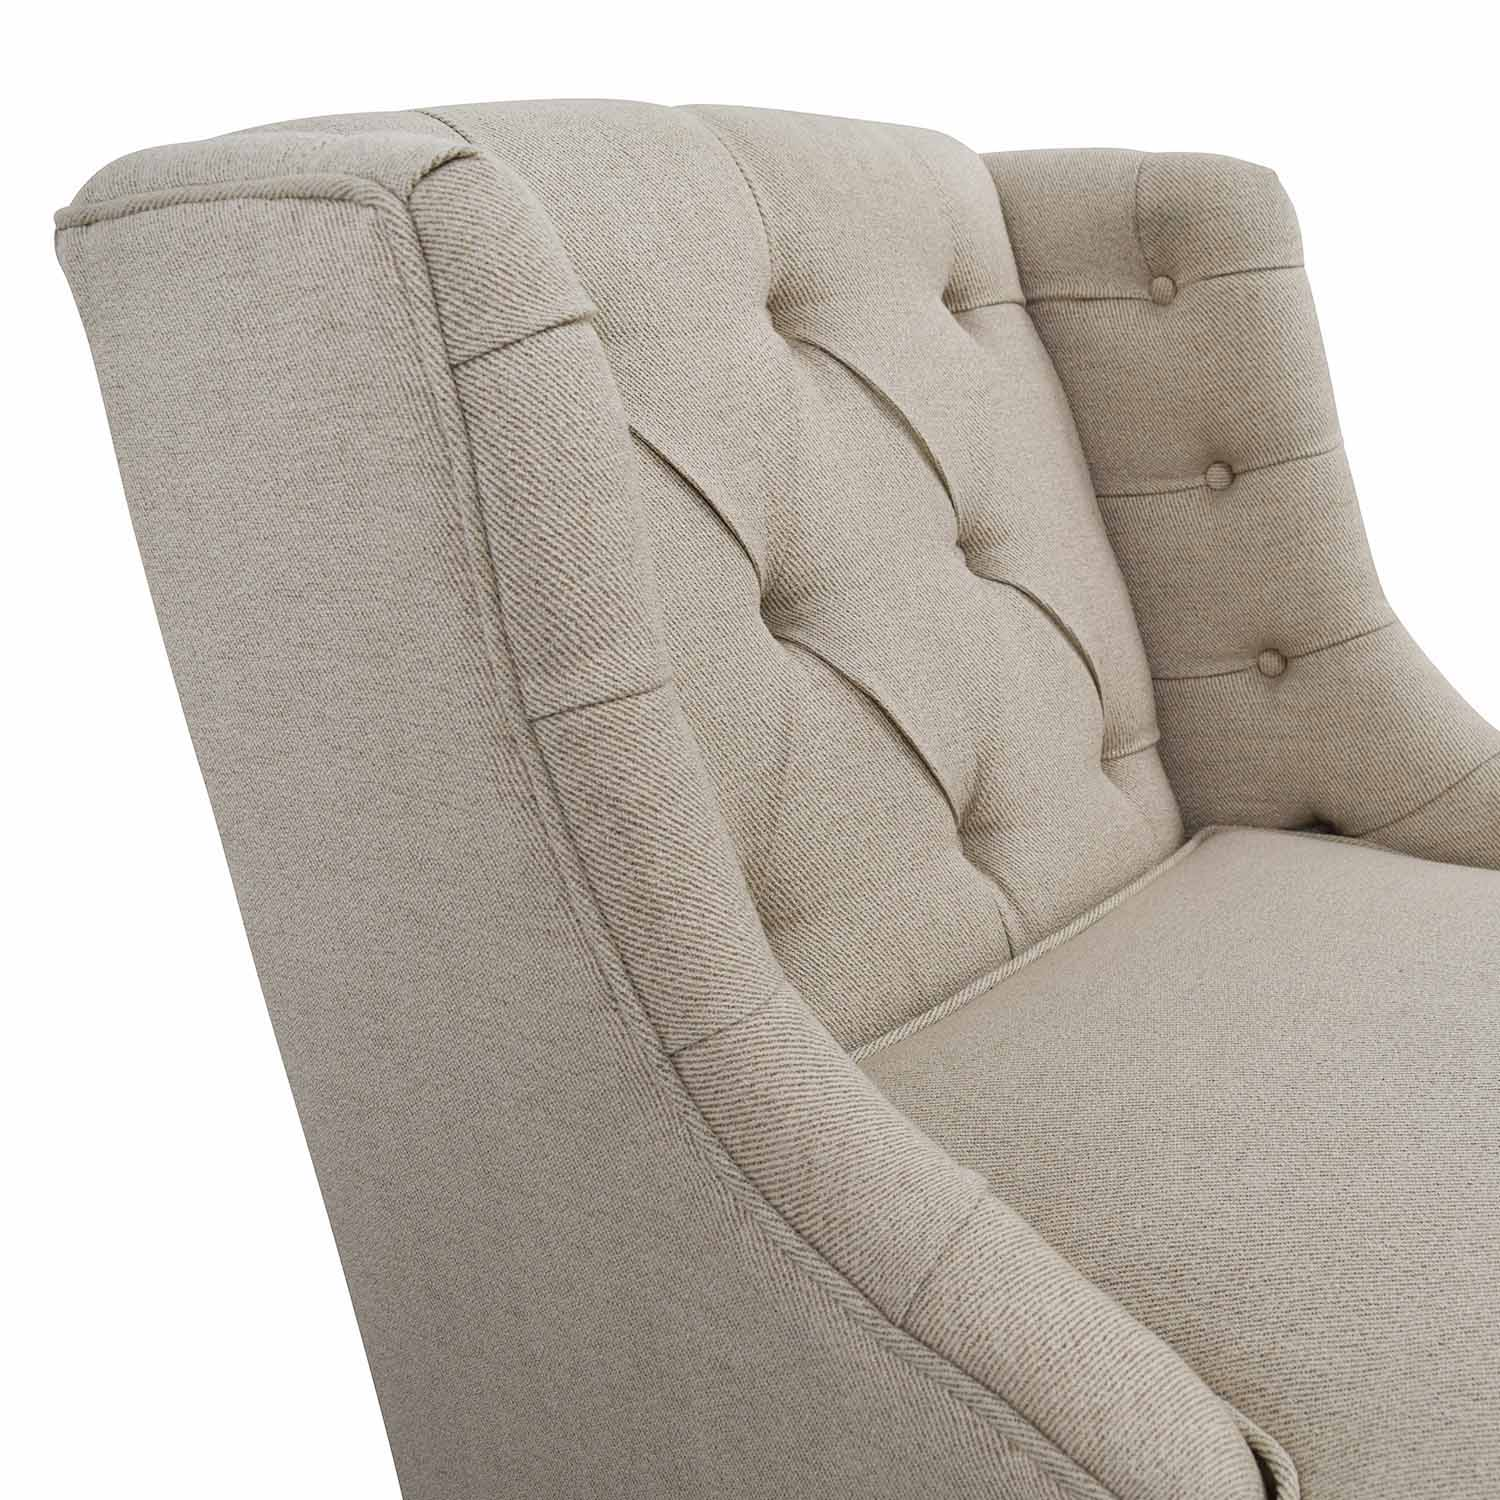 buy Madison Park Tufted Beige Arm Chair Madison Park Chairs